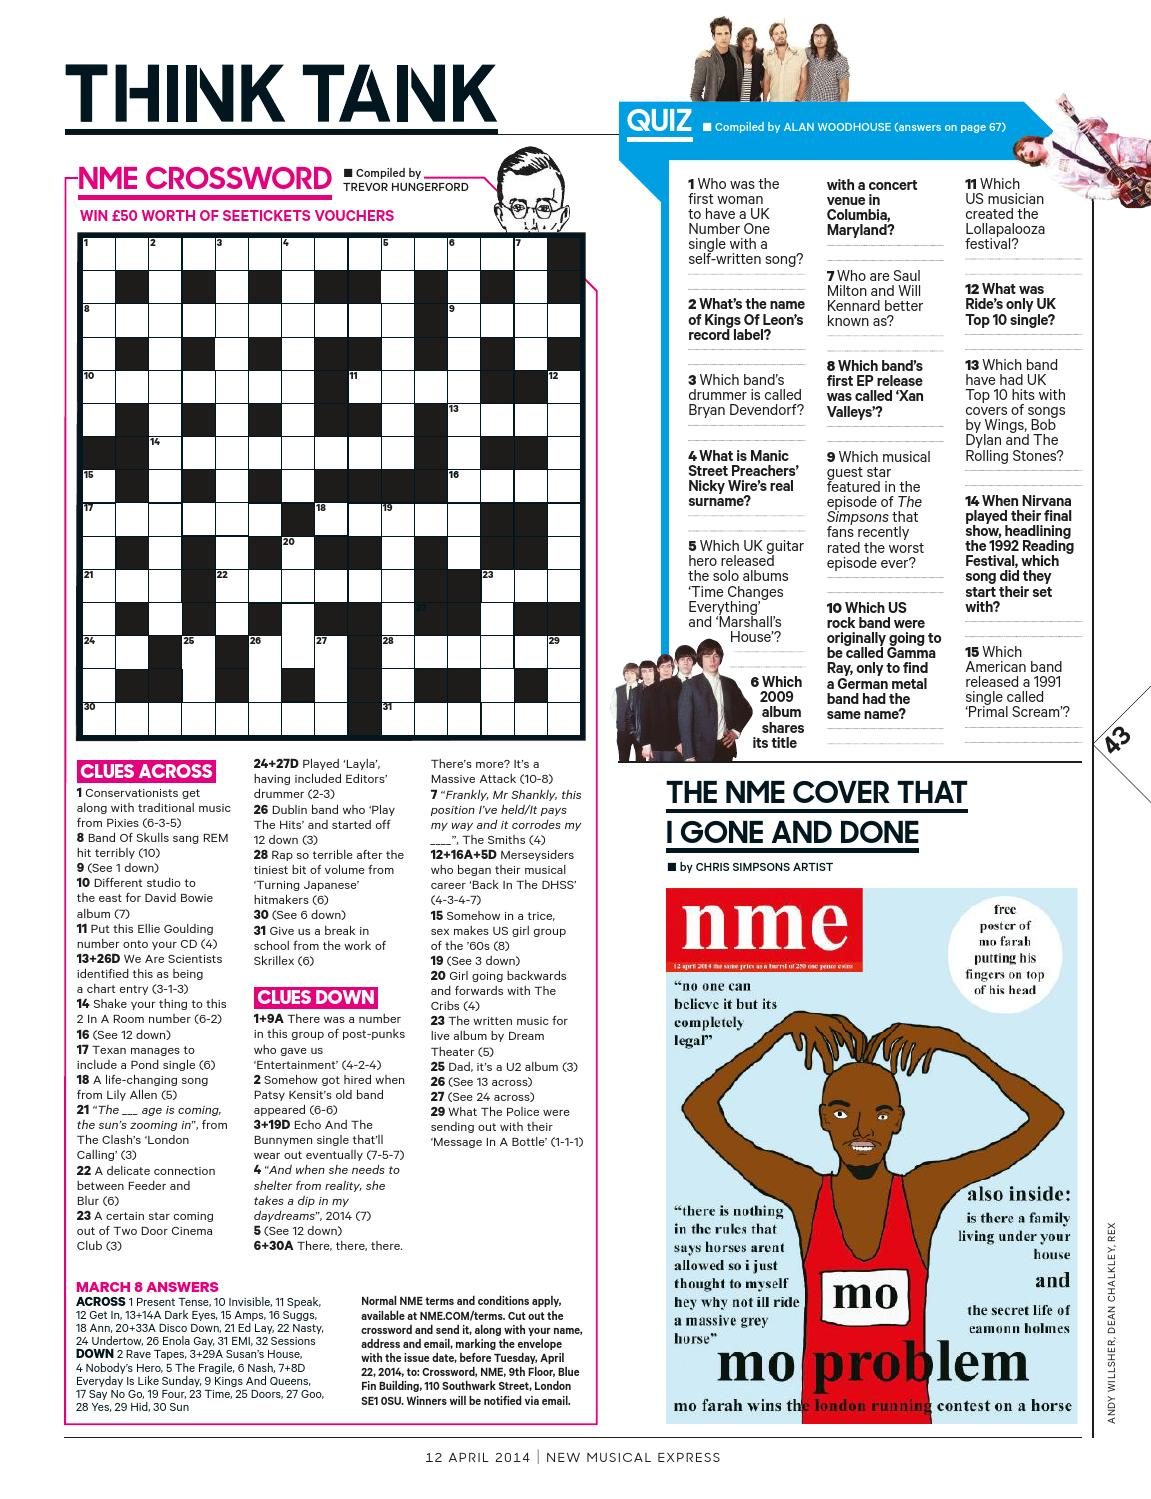 Nme m 2014 04 12 downmagaz com 8 by Stompper - issuu